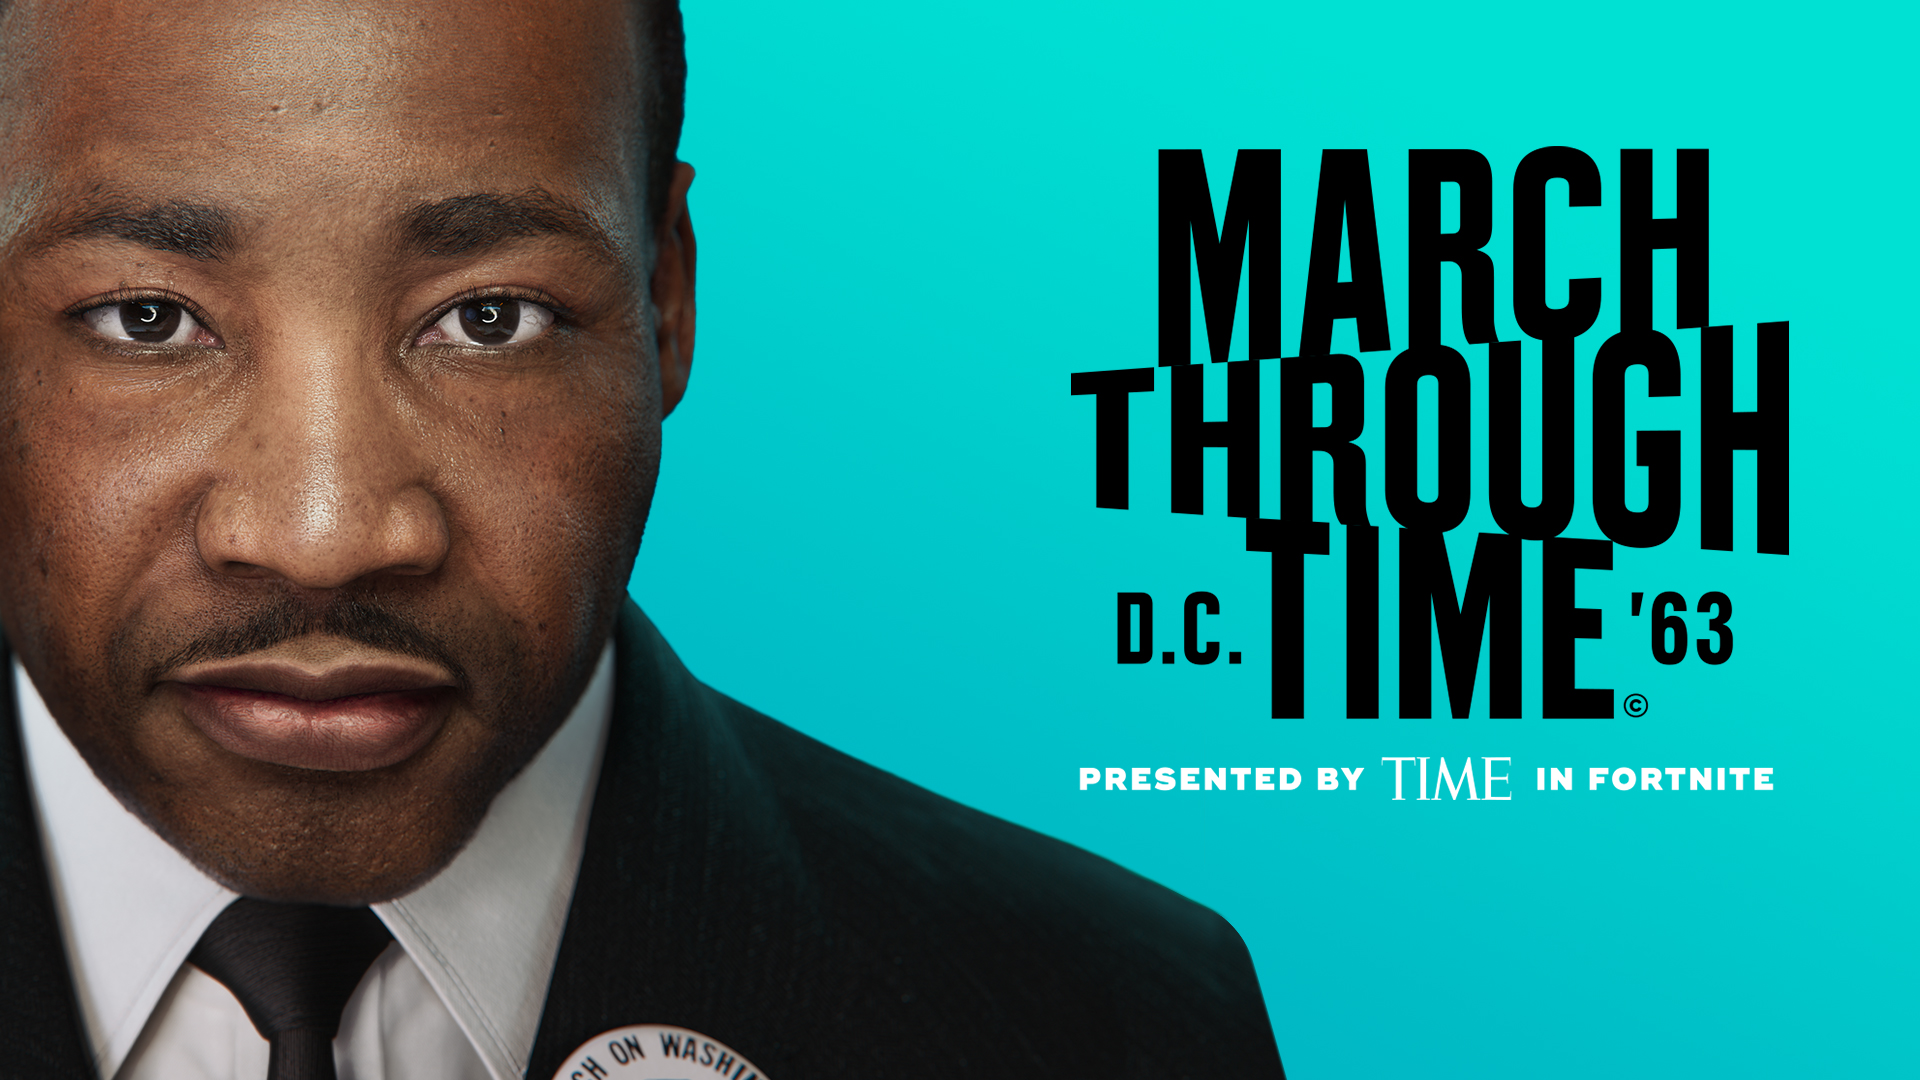 artwork for the March Through Time Fortnite event featuring Dr. Martin Luther King Jr.